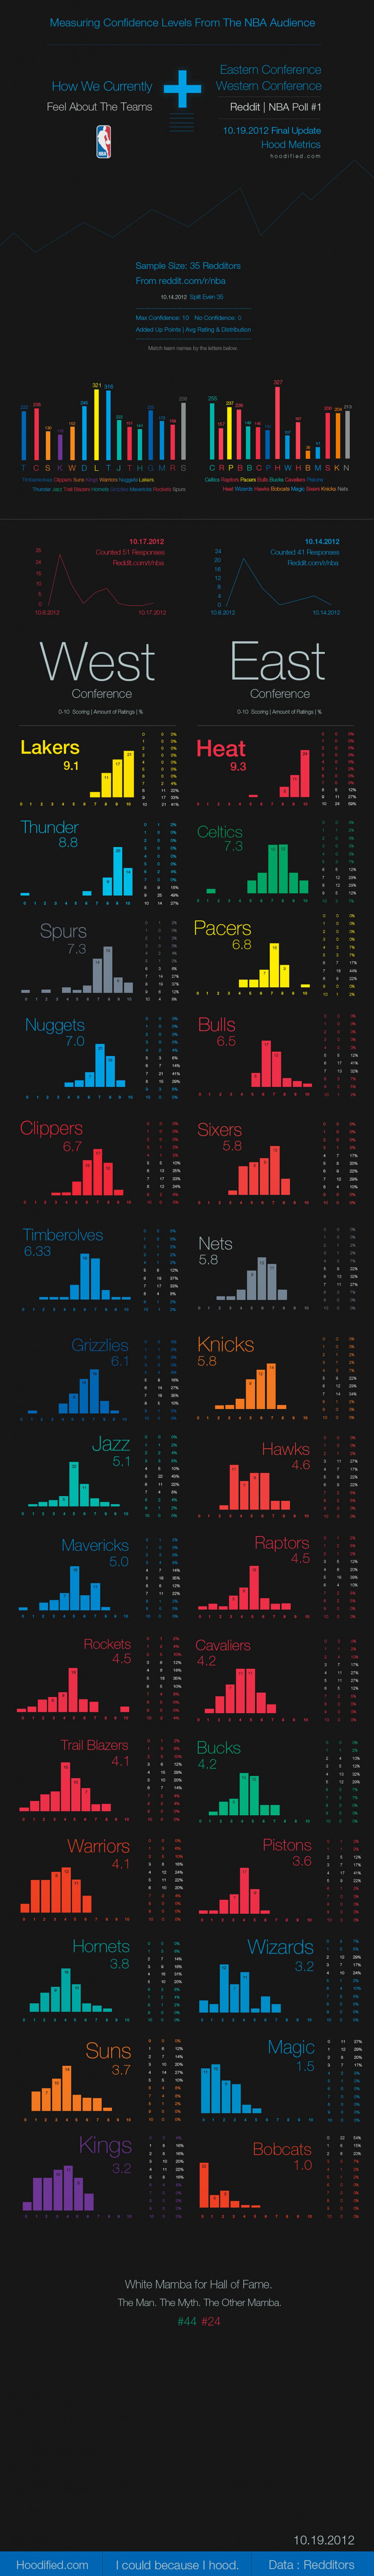 NBA Audience Confidence Levels 2012 Infographic